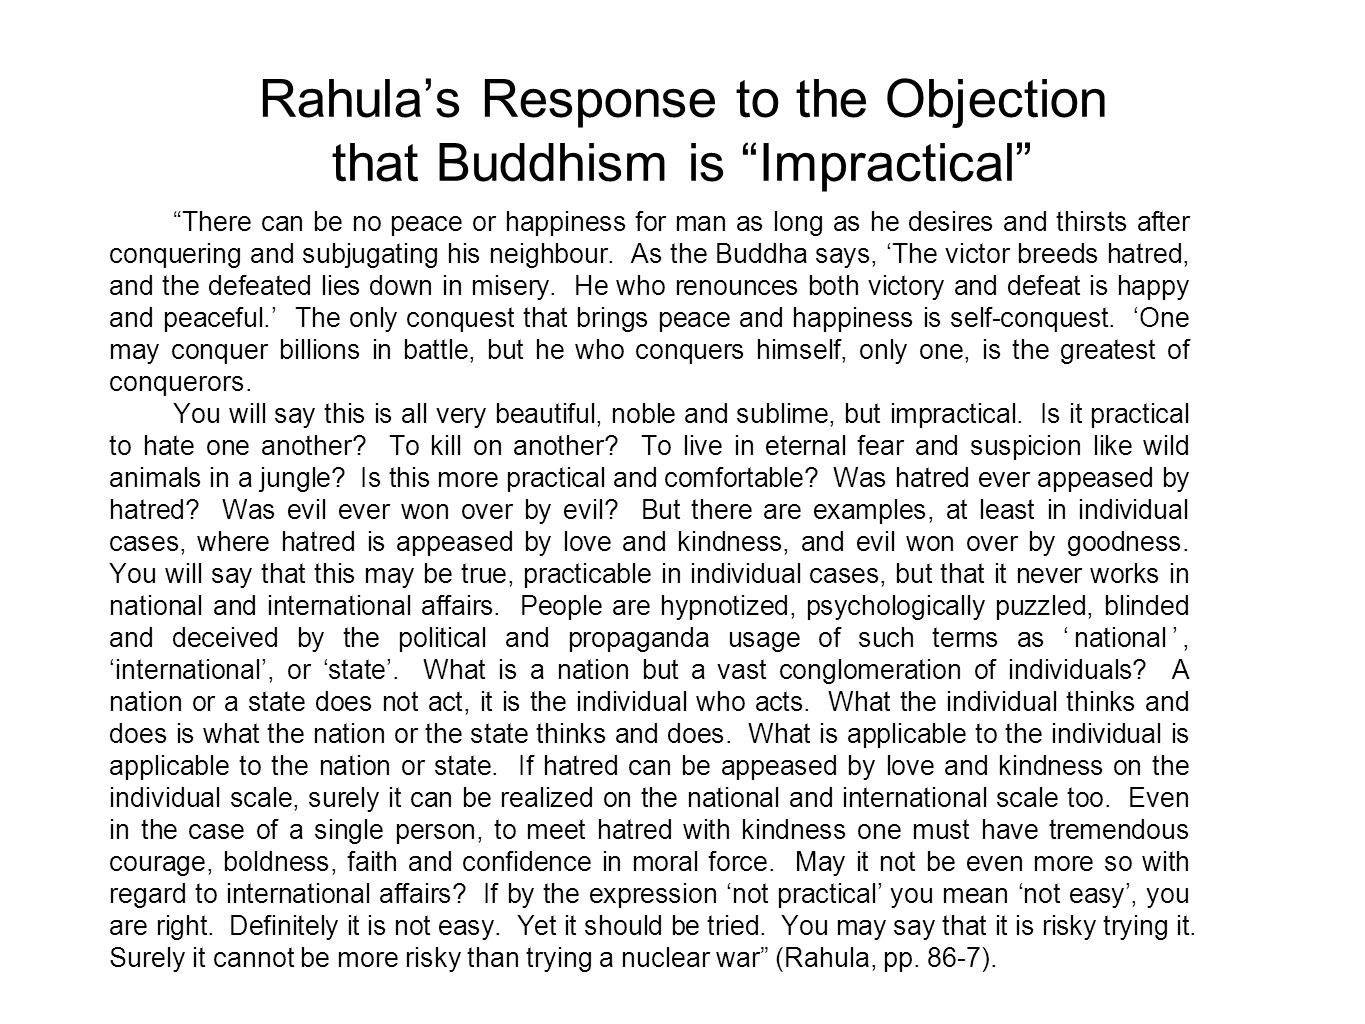 Rahula's Response to the Objection that Buddhism is Impractical There can be no peace or happiness for man as long as he desires and thirsts after conquering and subjugating his neighbour.